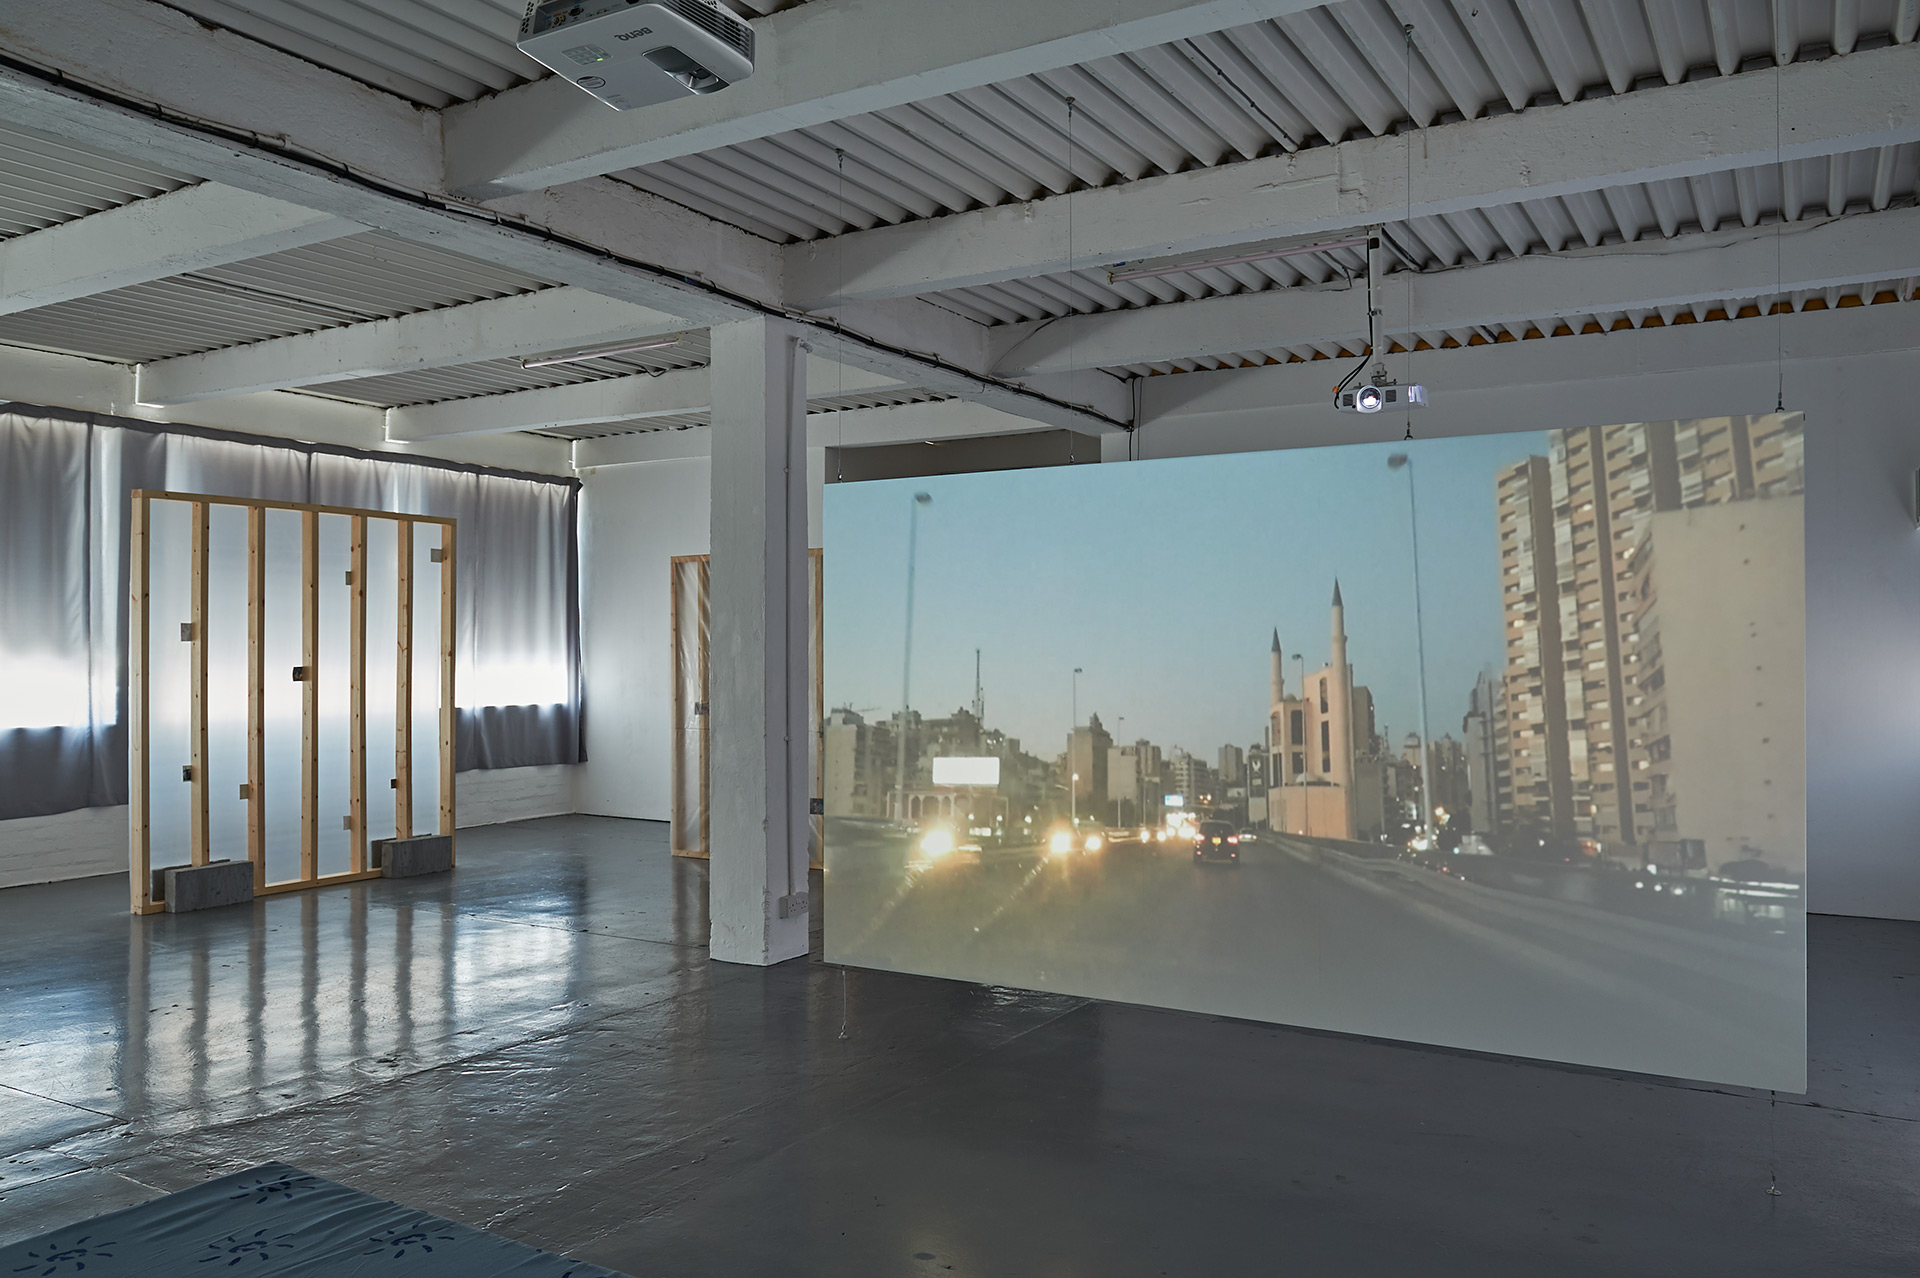 A custom made wooden projection screen hangs from the ceiling onto which a video is projected, a wall like structure covered in translucent plastic sits in the background.